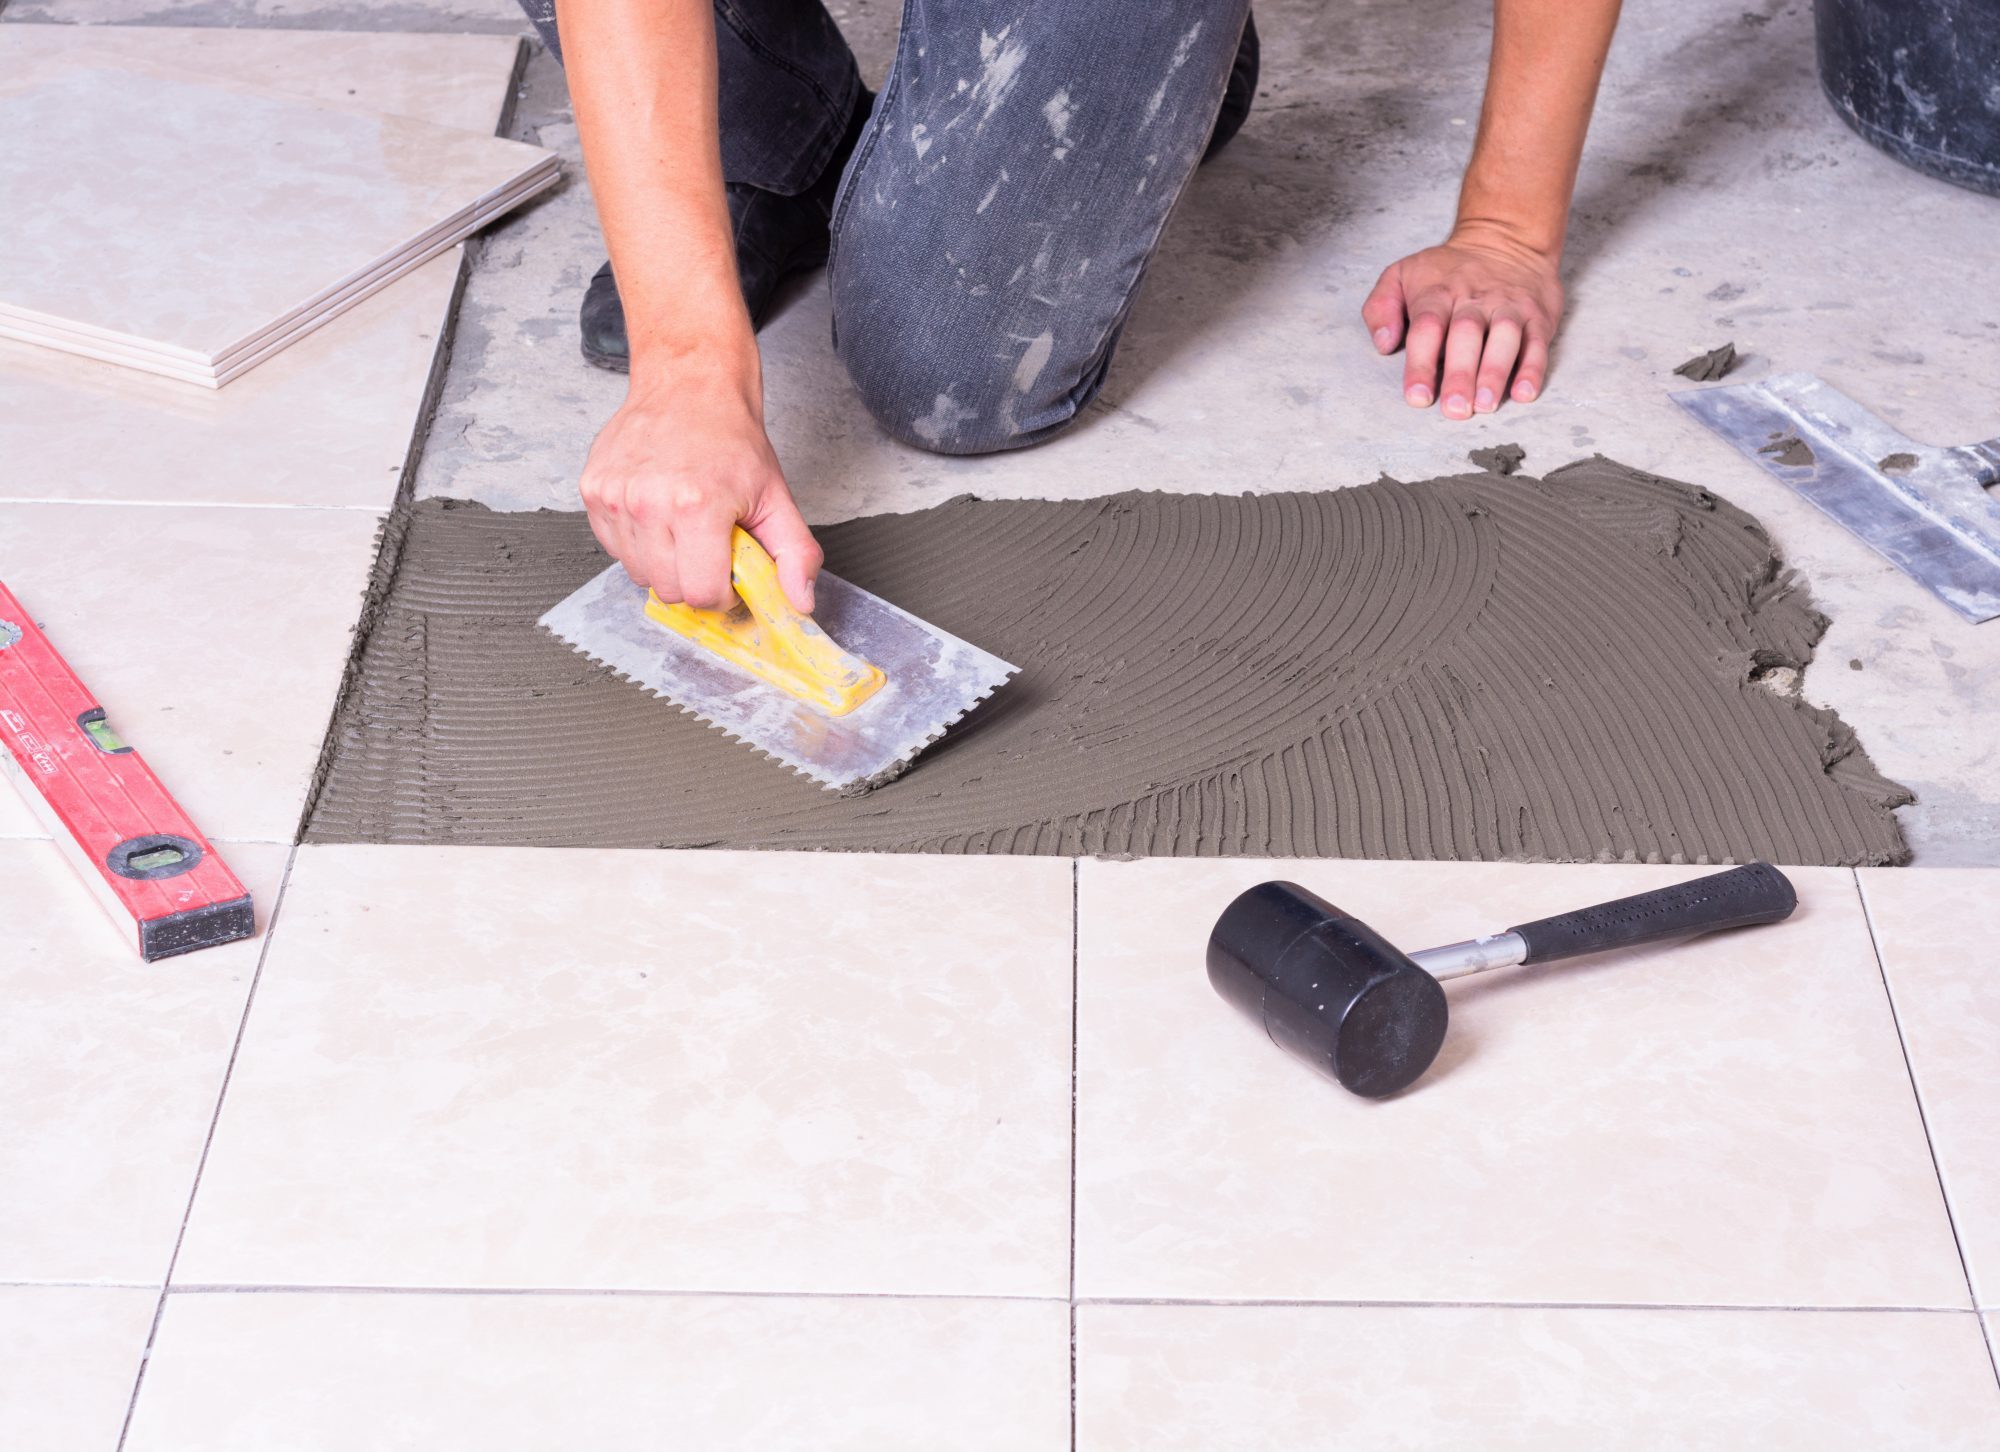 Tiler using tools to install ceramic tiles on a floor